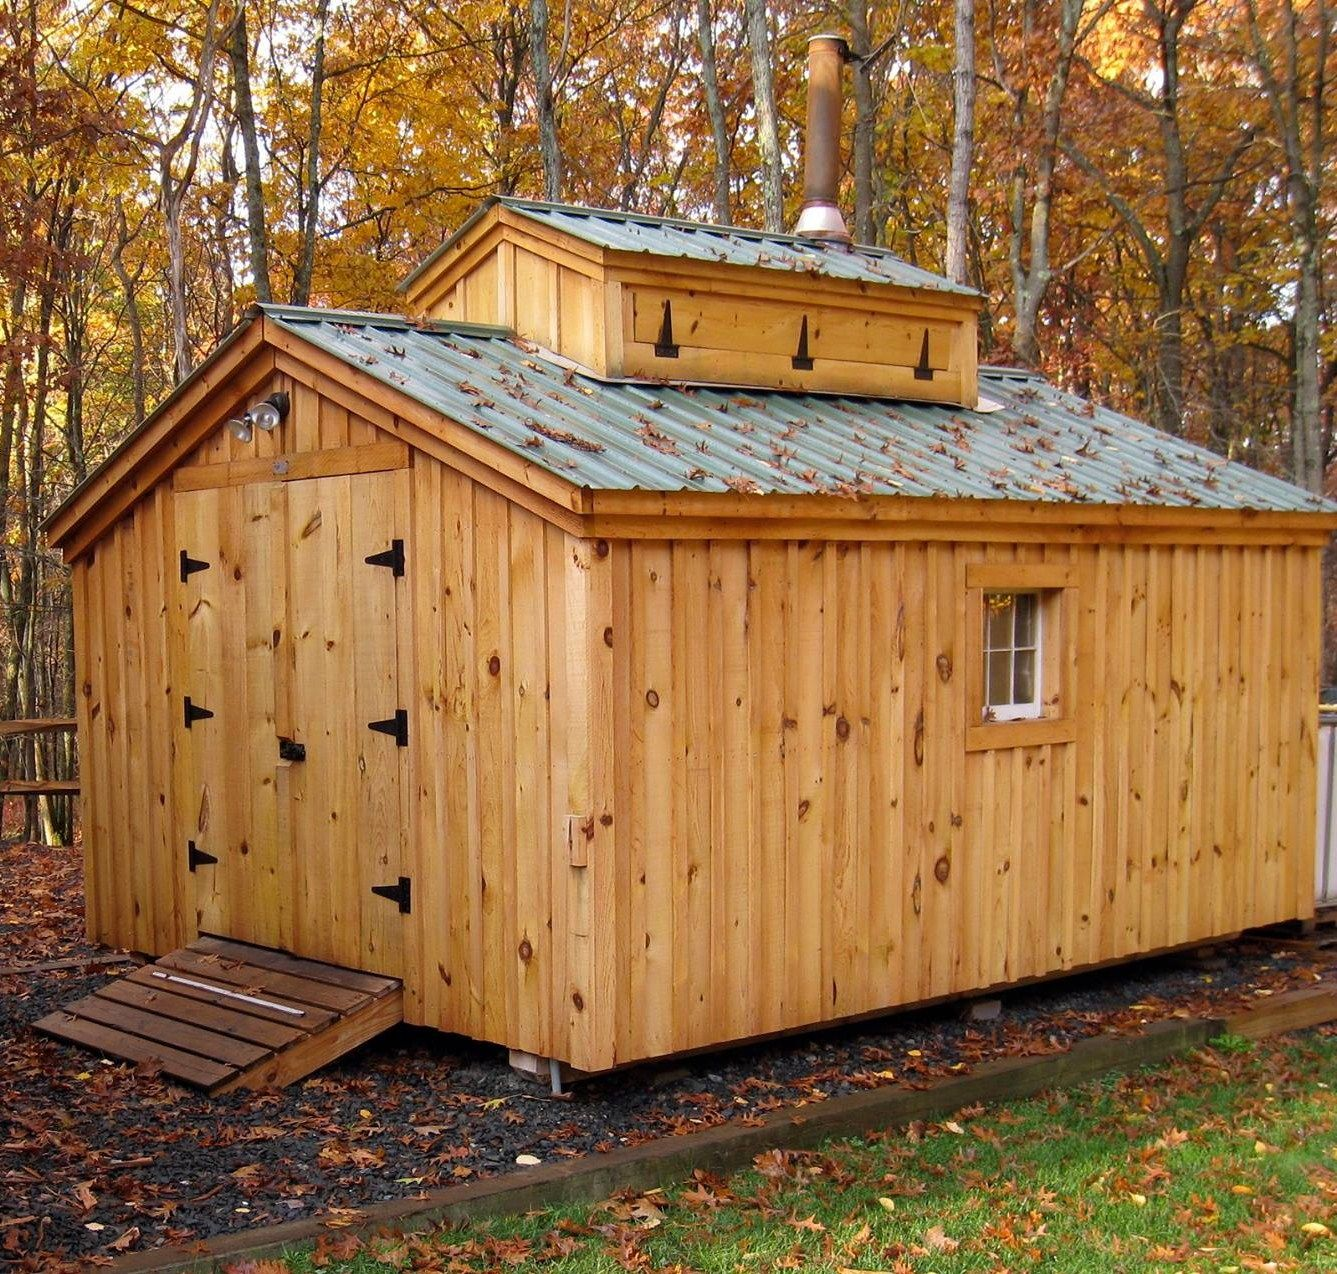 12 u0027 x 16 u0027 sugaring shack available as a kit estimated assembly